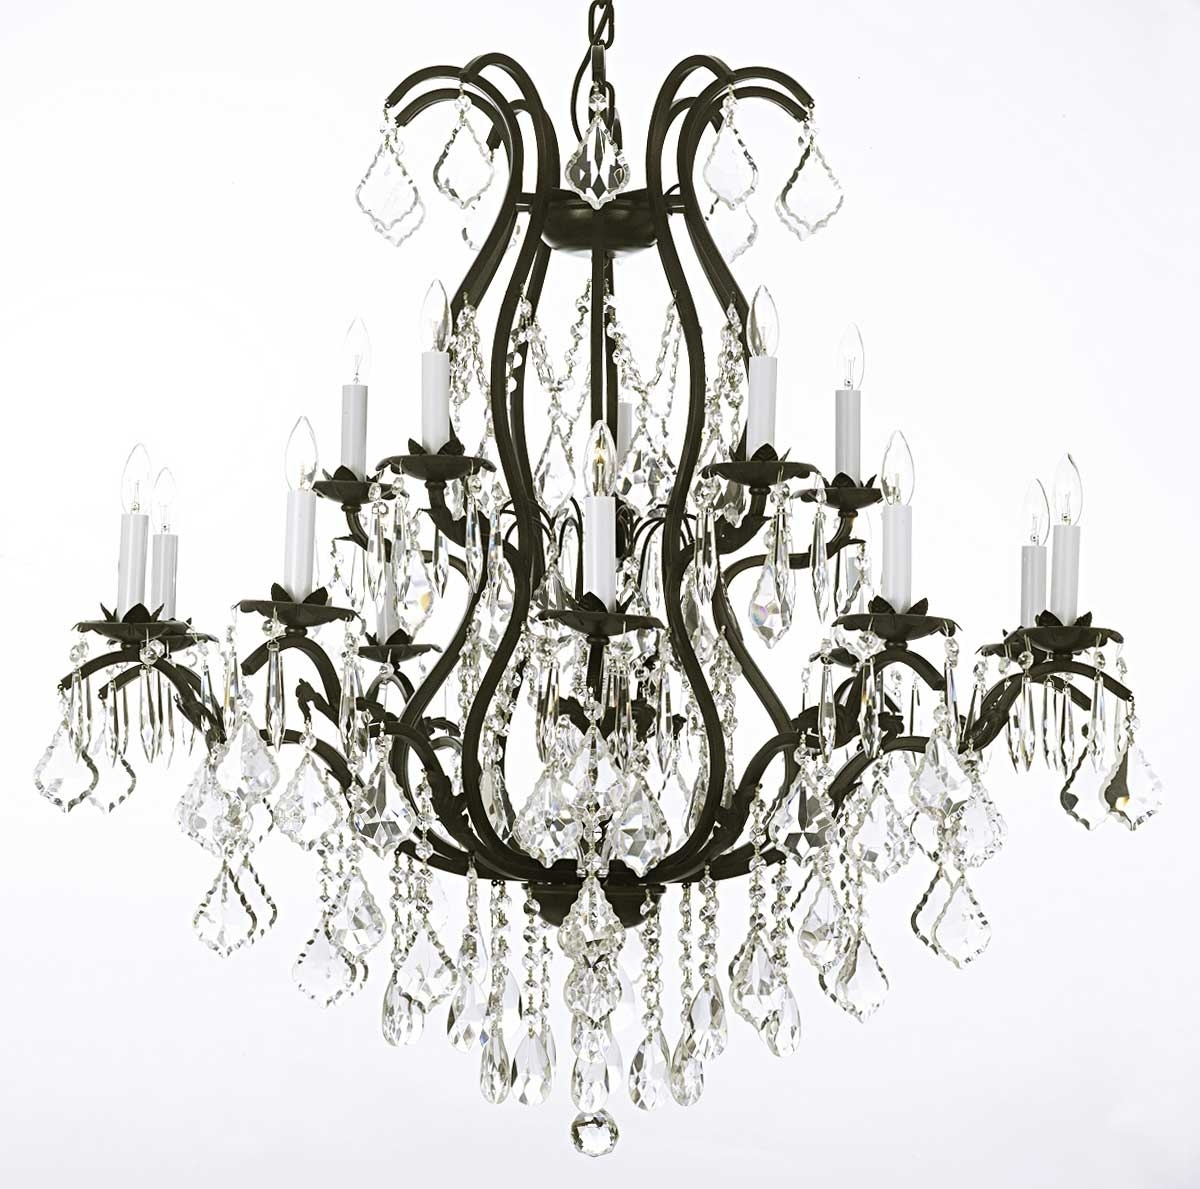 Preferred Modern Wrought Iron Chandeliers With Modern Black Wrought Iron And Crystal Chandeliers Plus Lamp Holder (View 12 of 20)